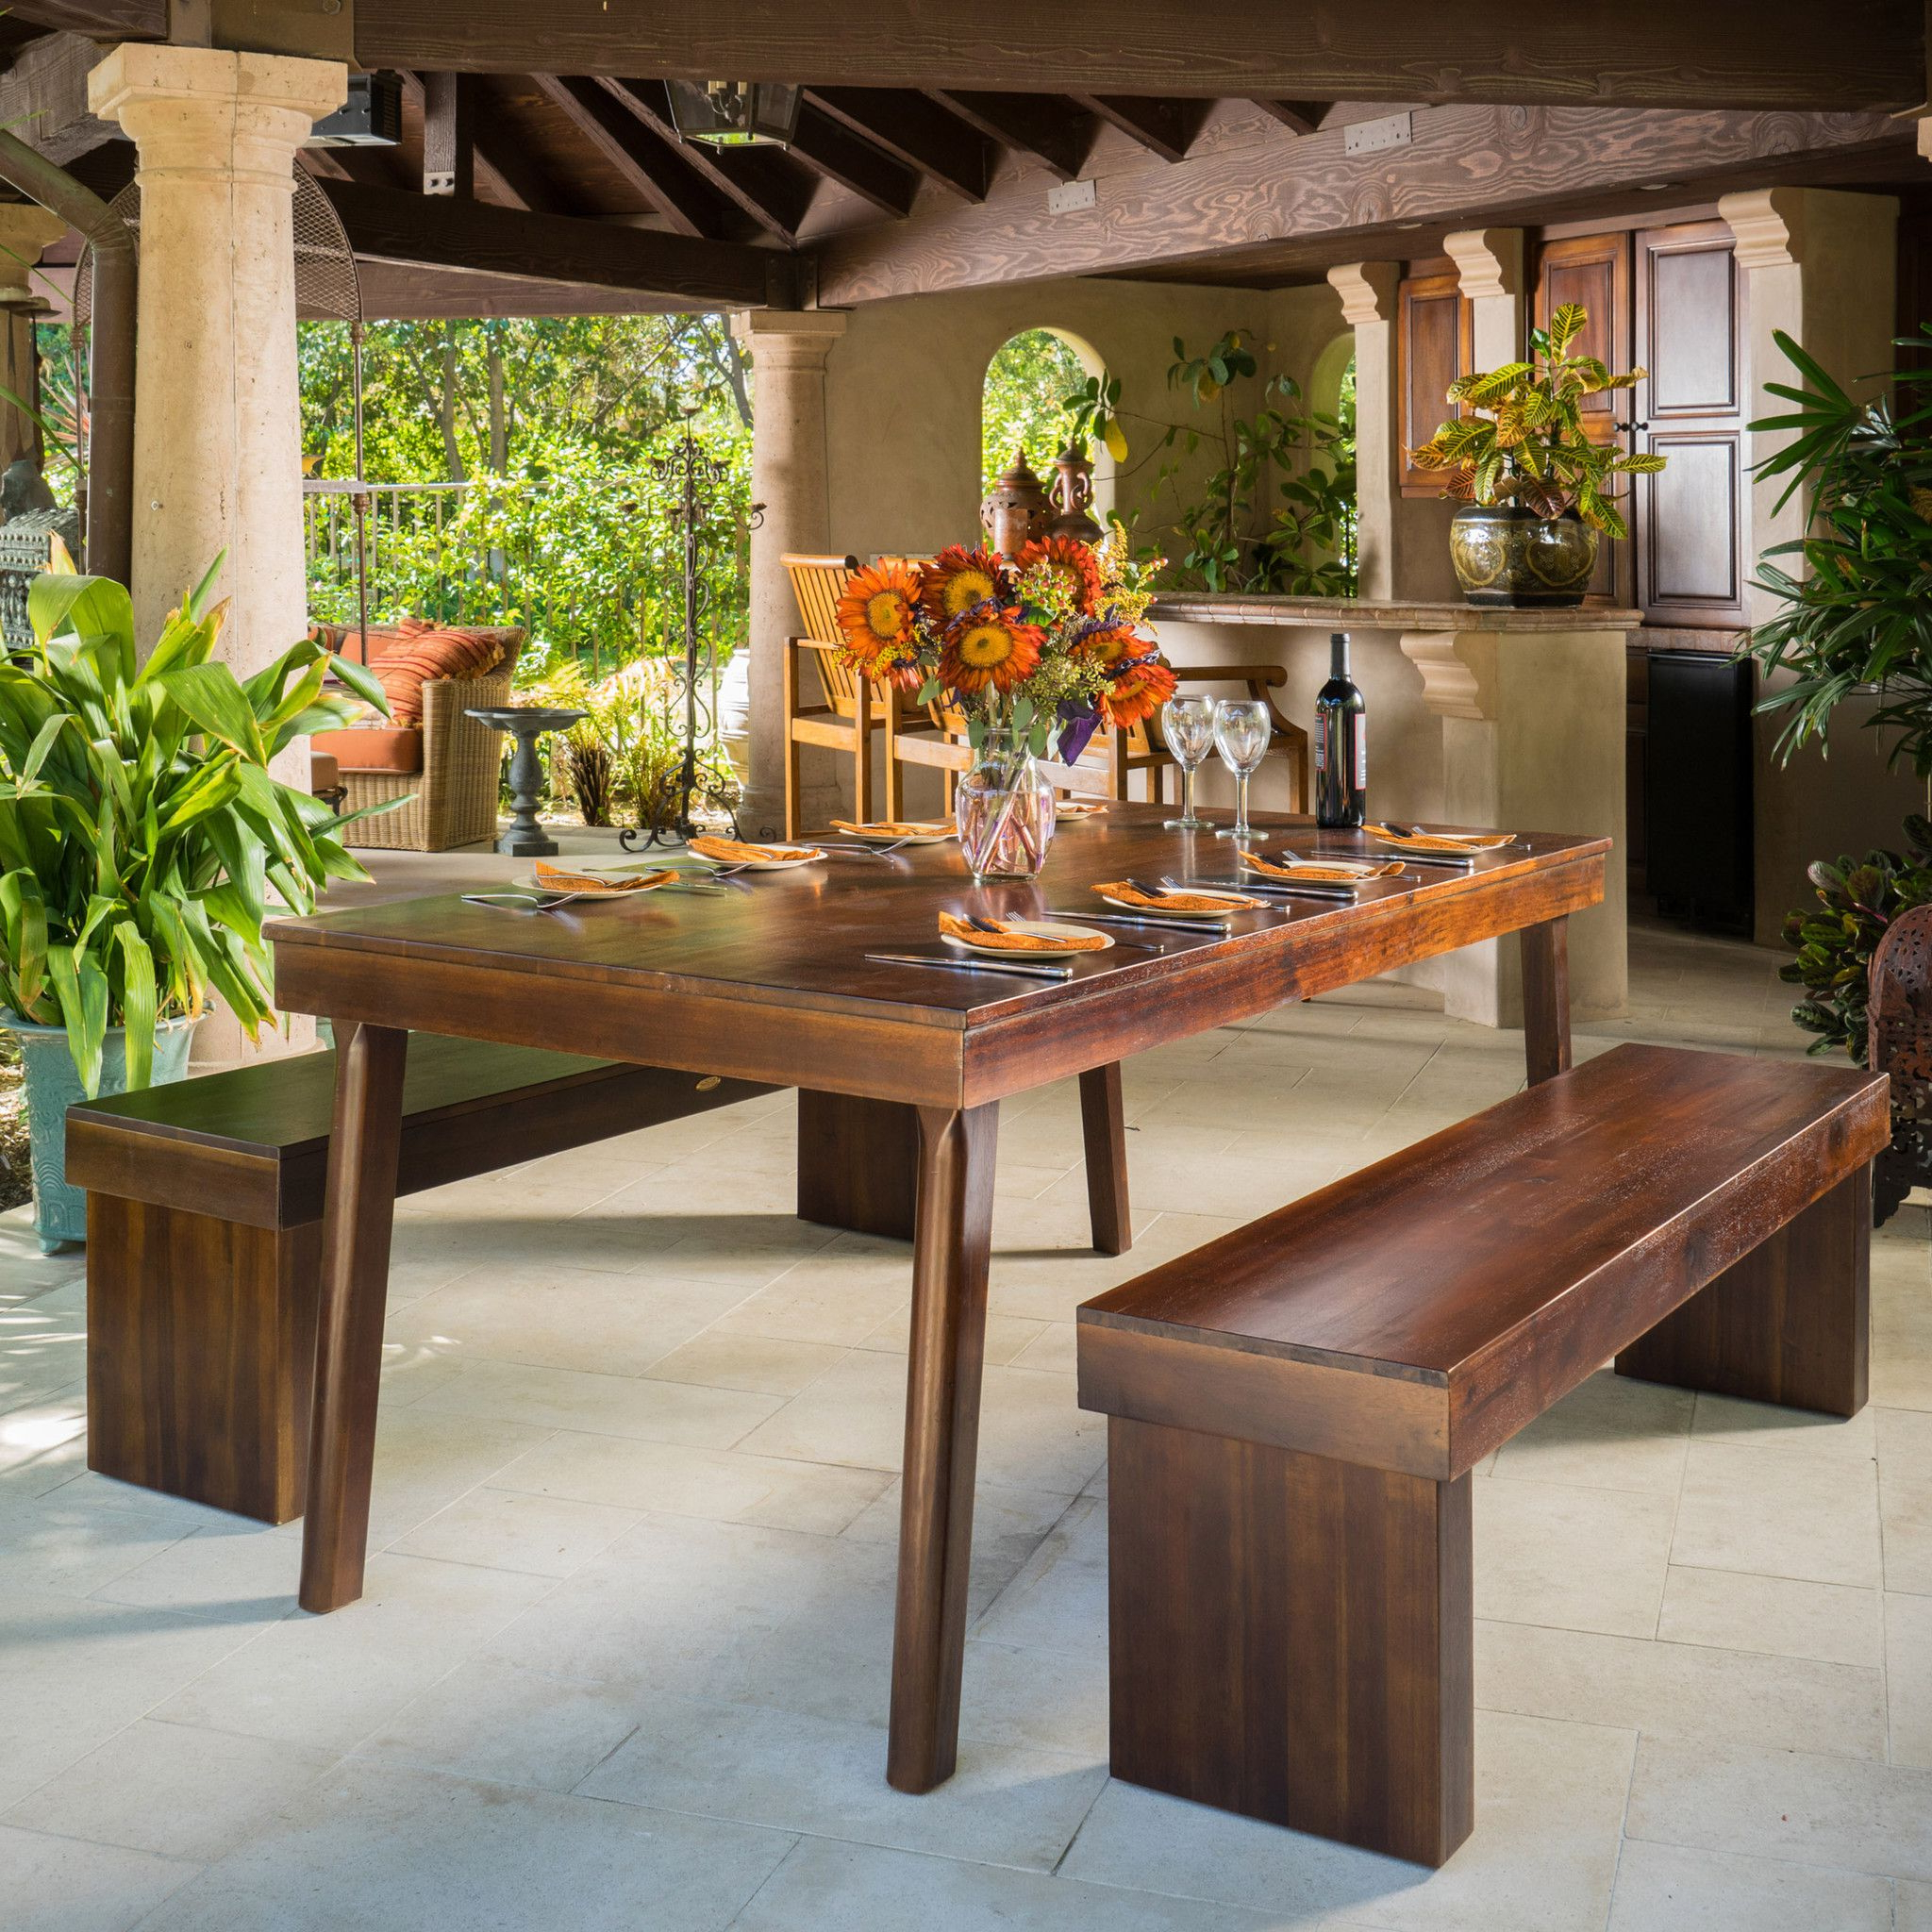 2020 Kaya 3 Piece Dining Sets Pertaining To Salvador 3Pc Mahogany Stained Wood Table And Bench Dining Set (View 2 of 25)